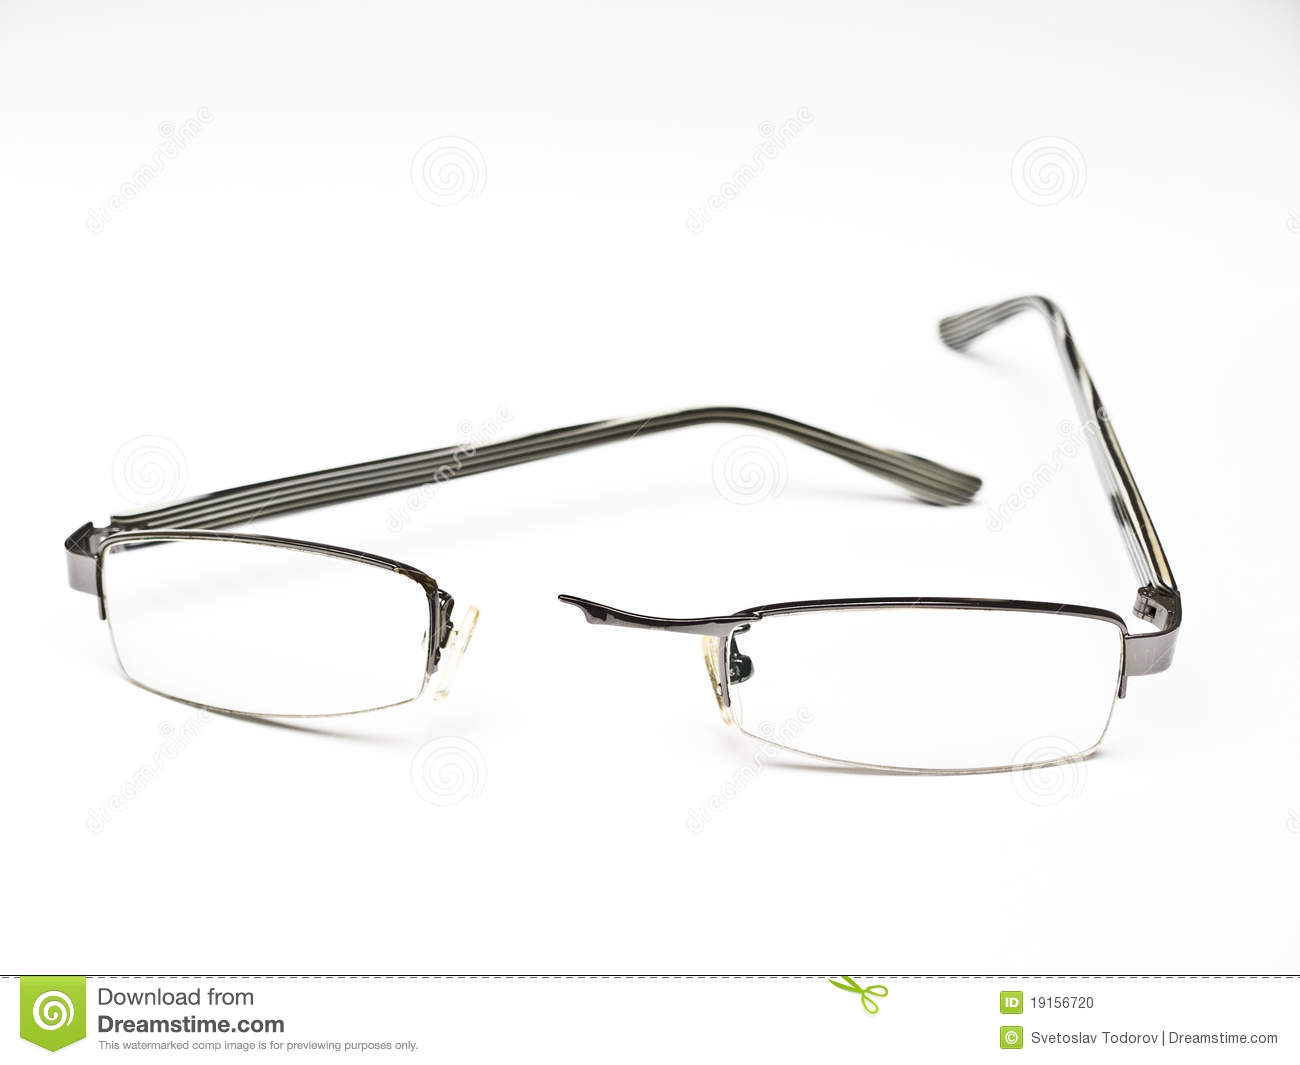 Glasses Frames Broken : Broken Eyeglasses Stock Photo - Image: 19156720